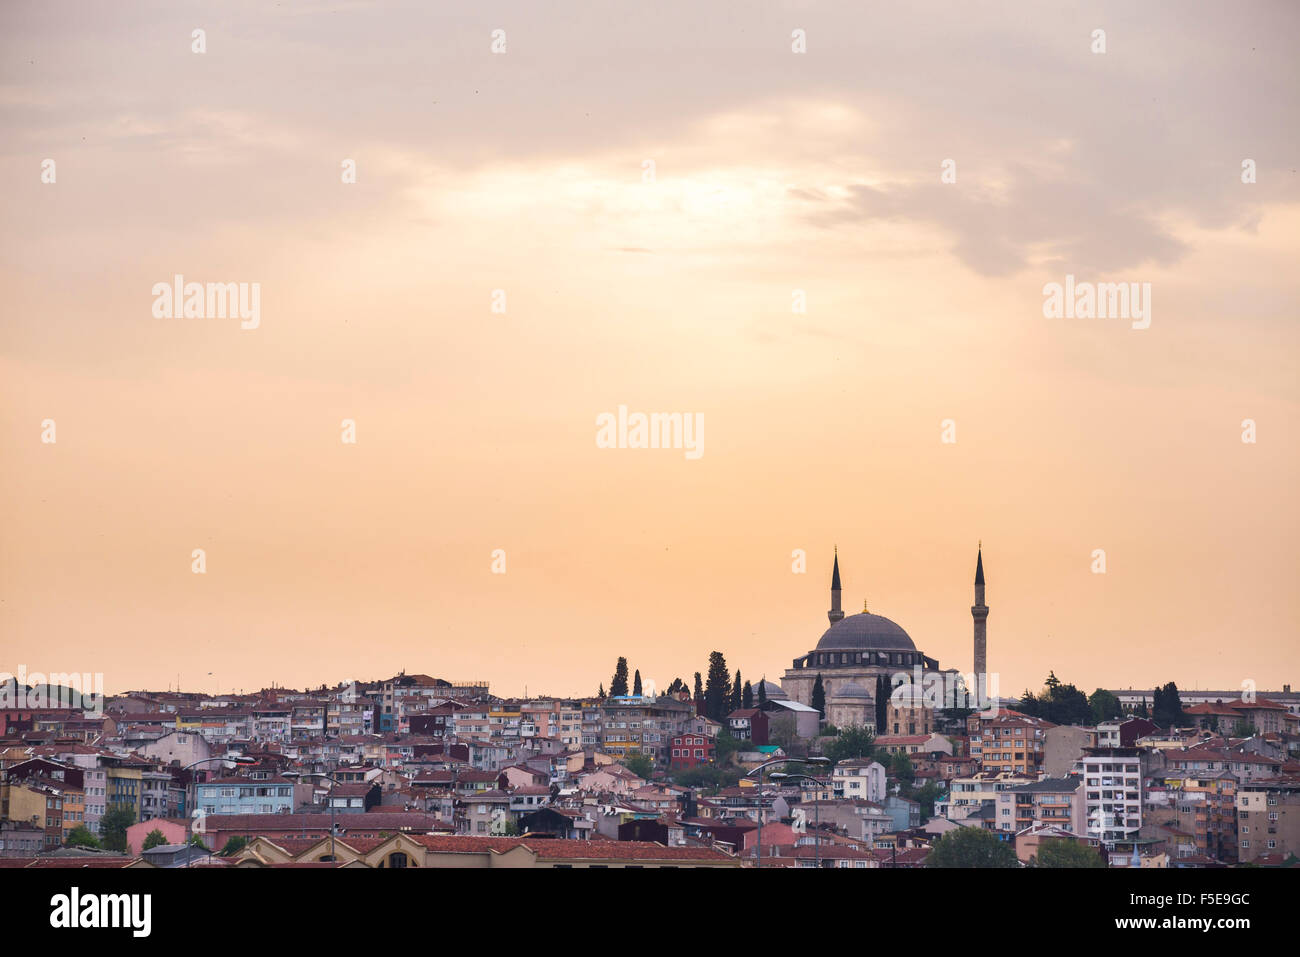 Hilltop mosque at sunset, Istanbul, Turkey, Europe - Stock Image